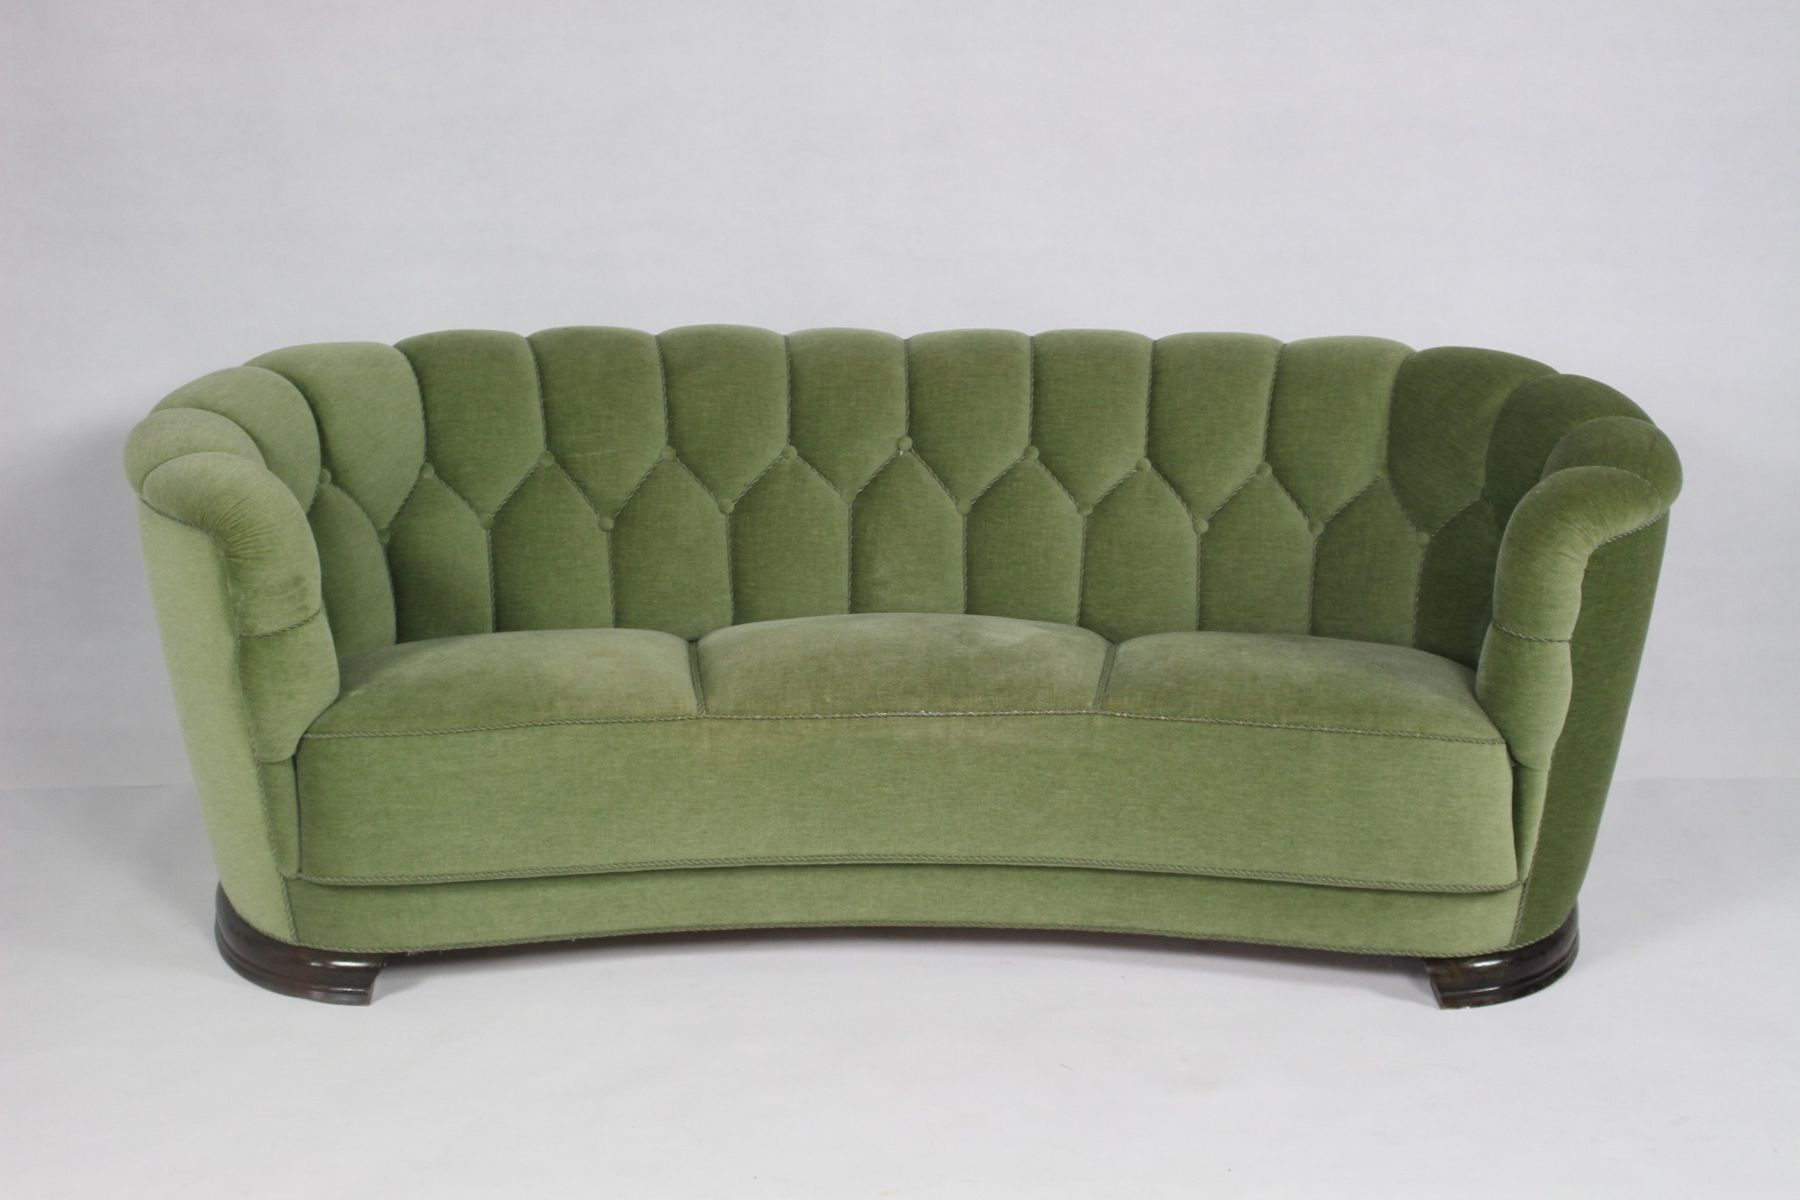 Mid century modern danish green curved sofa for sale at pamono Curved loveseat sofa